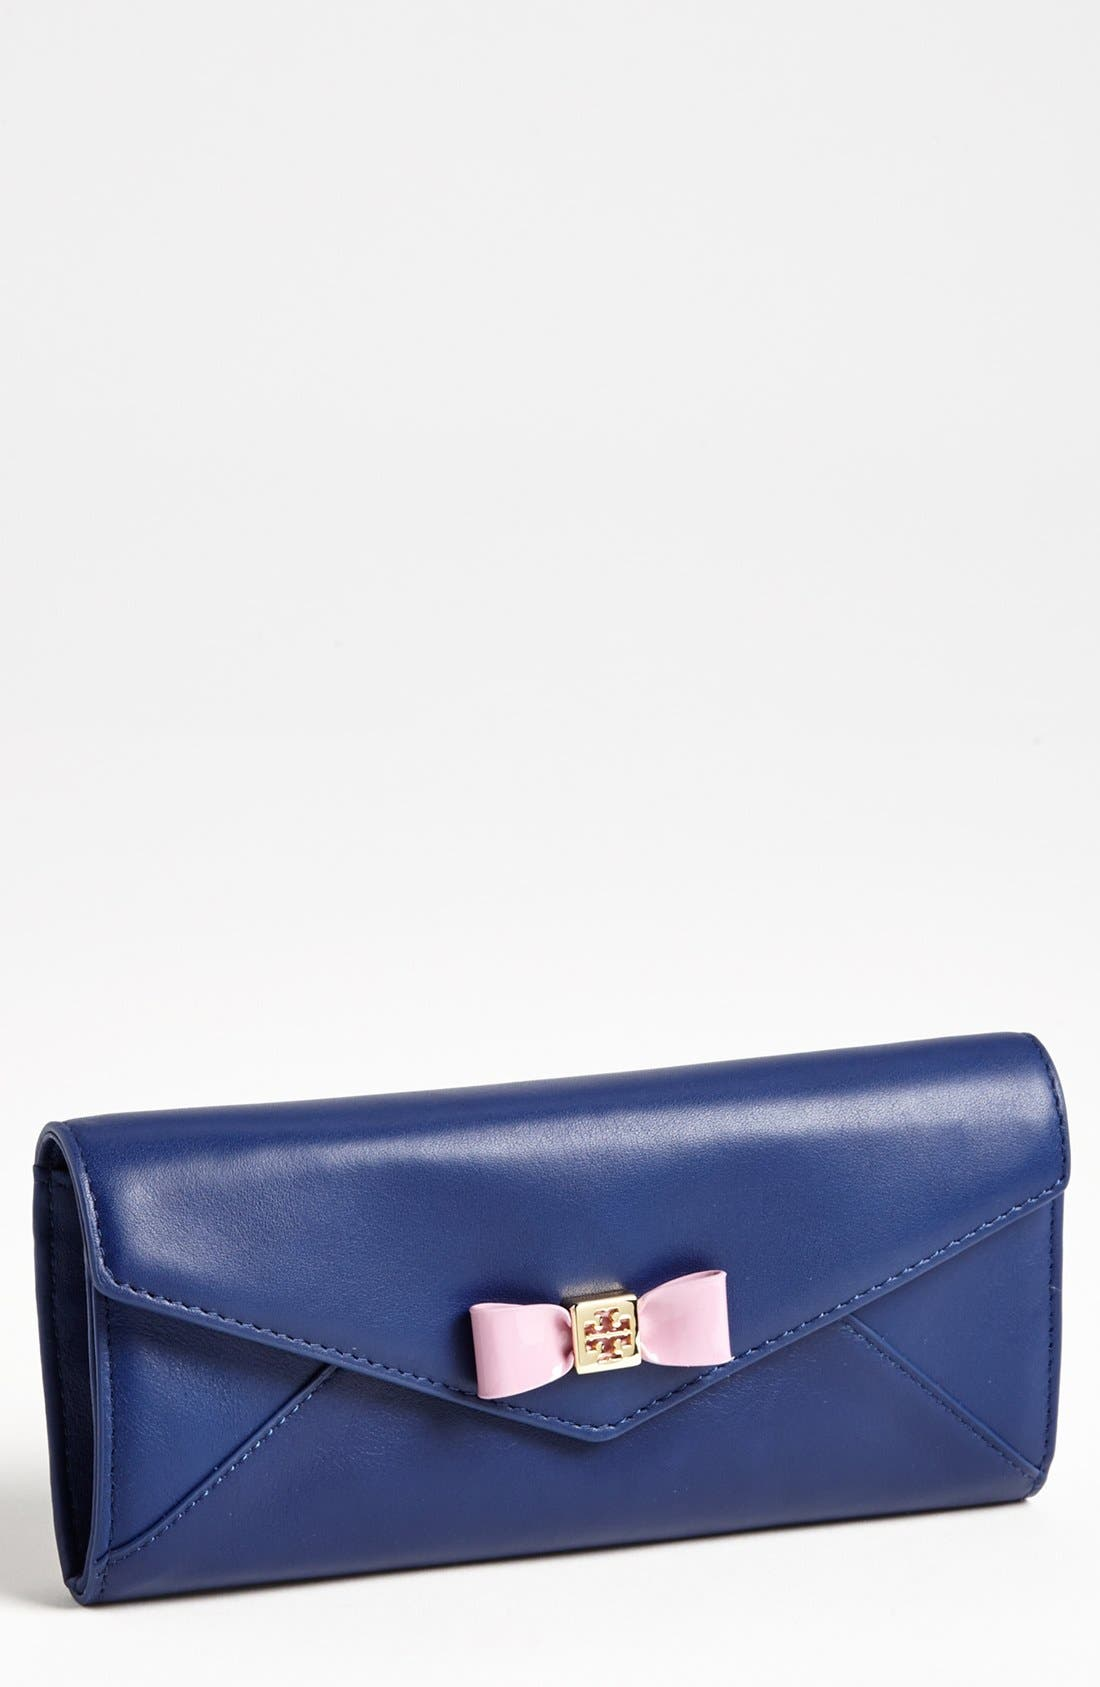 Main Image - Tory Burch 'Bow' Envelope Continental Wallet